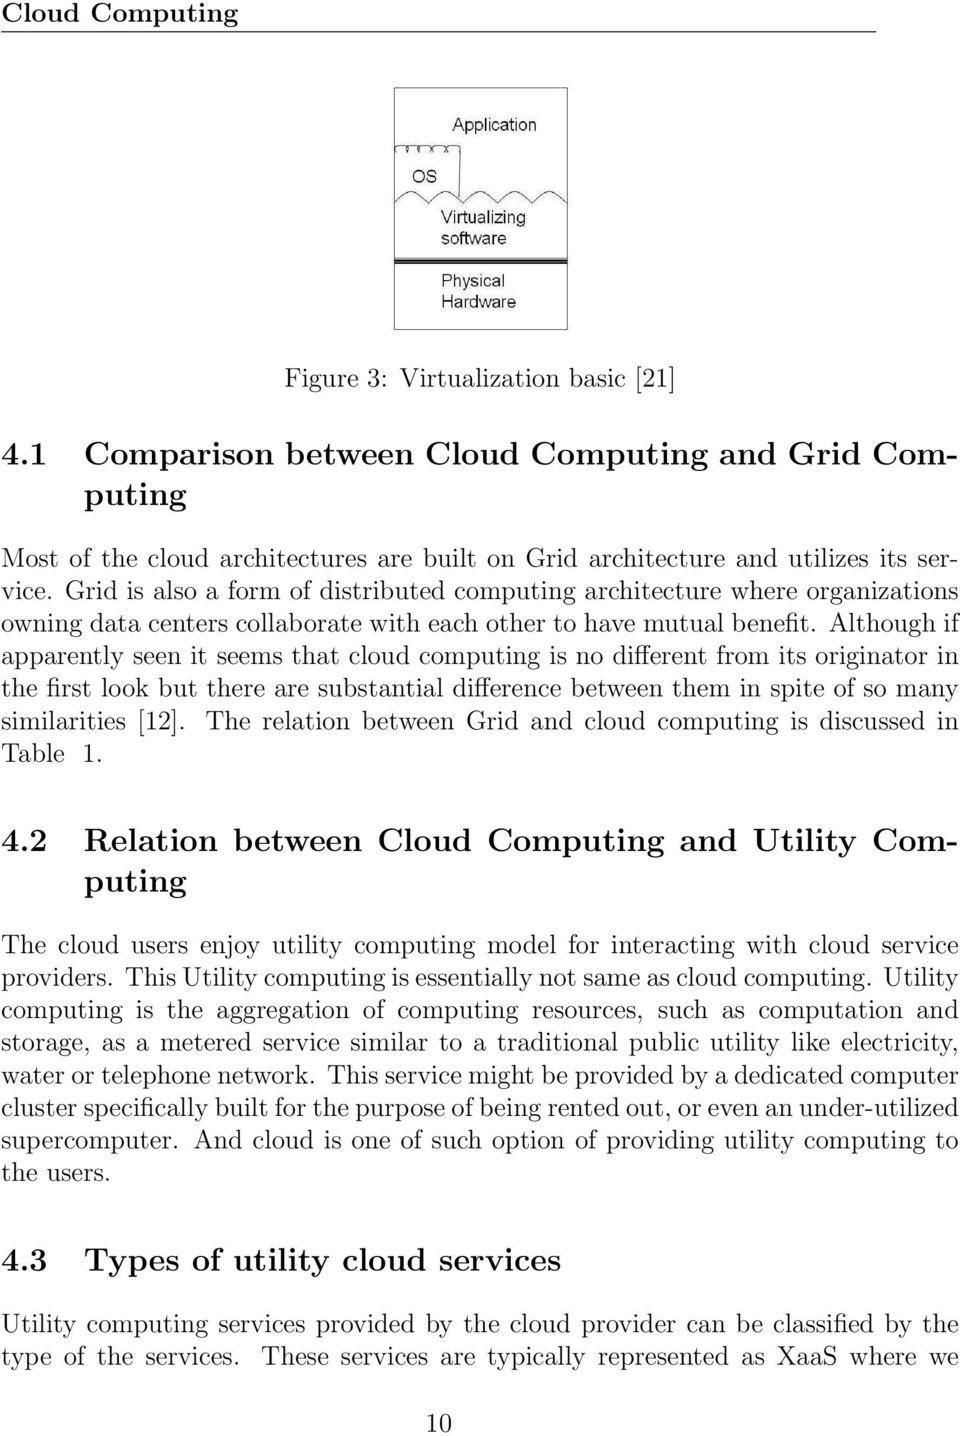 Although if apparently seen it seems that cloud computing is no different from its originator in the first look but there are substantial difference between them in spite of so many similarities [12].